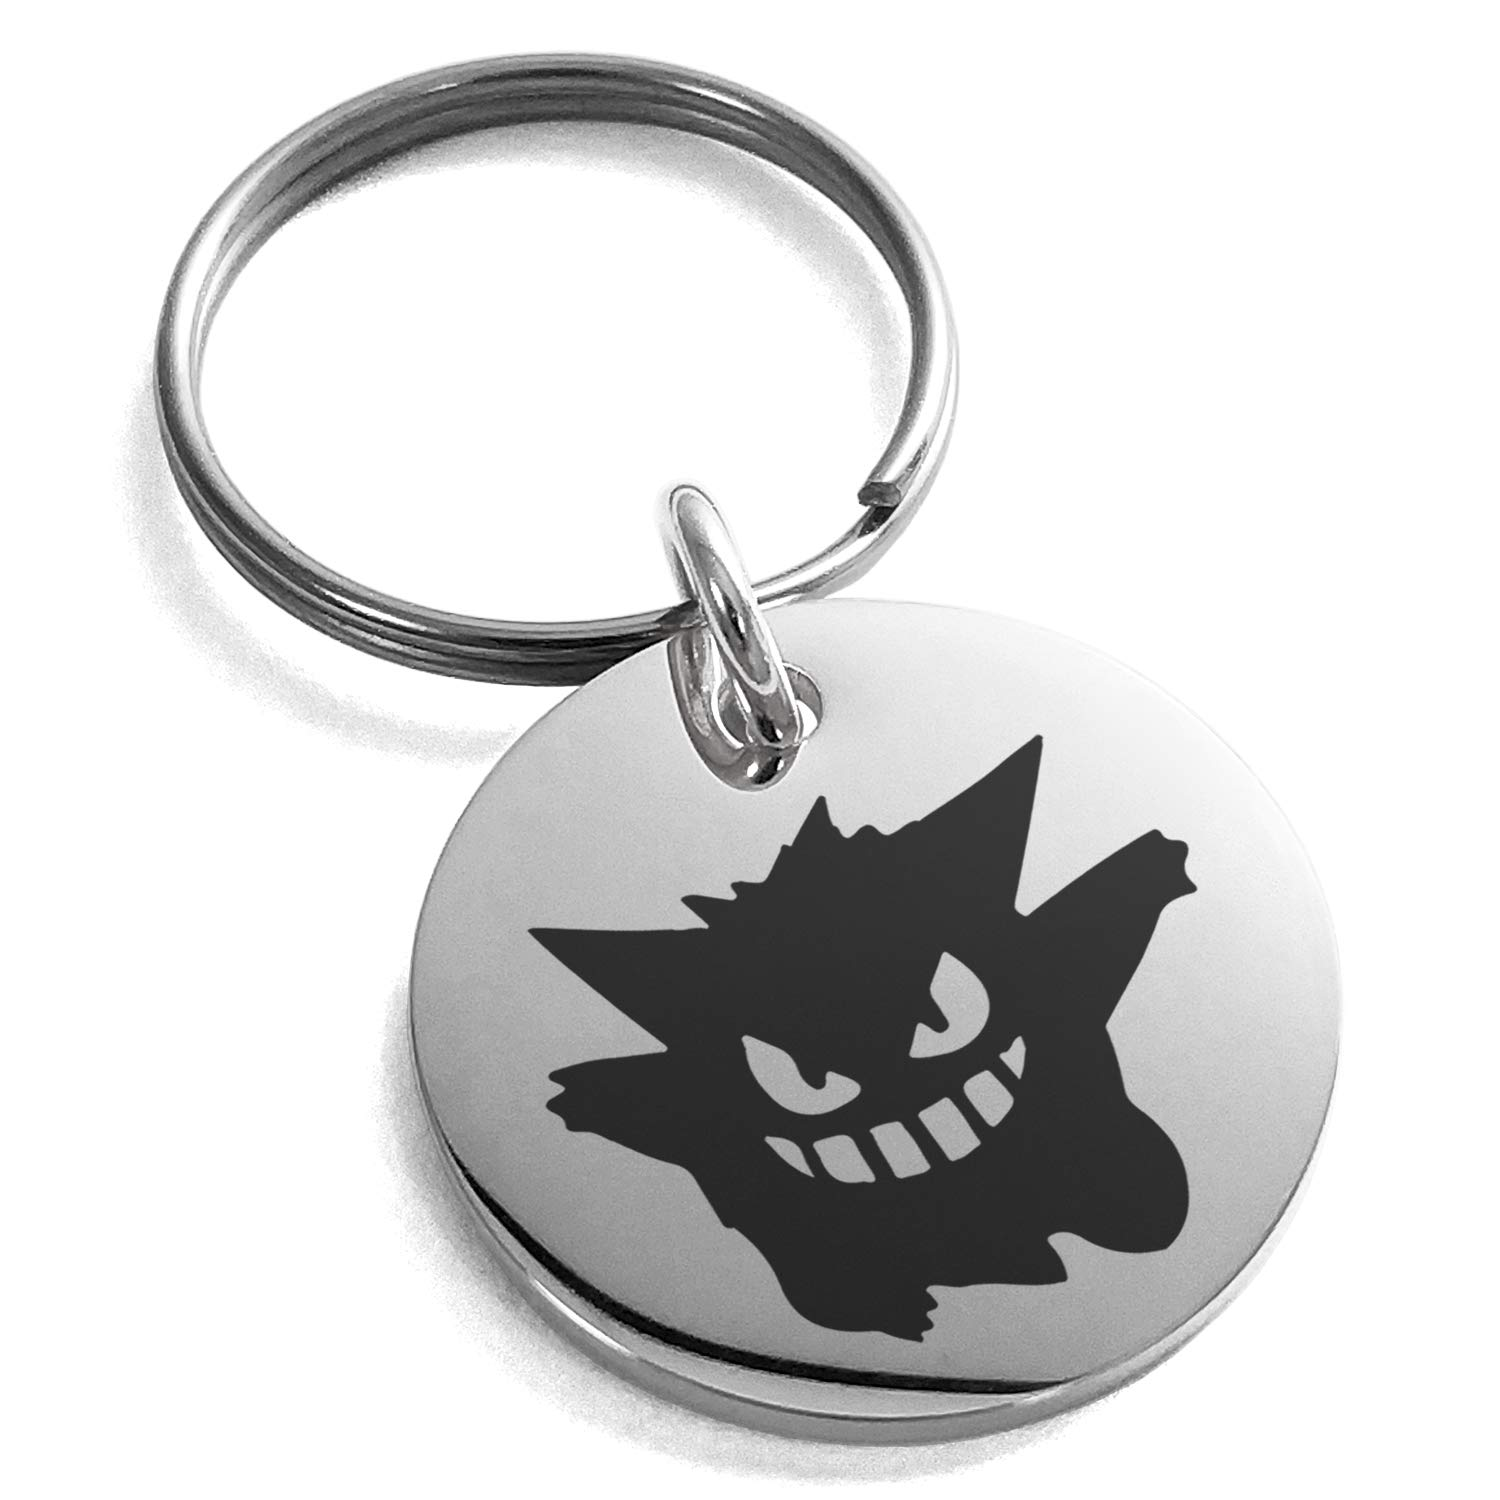 Tioneer Stainless Steel 1st Gen Gengar Pokémon Engraved Small Medallion Circle Charm Keychain Keyring